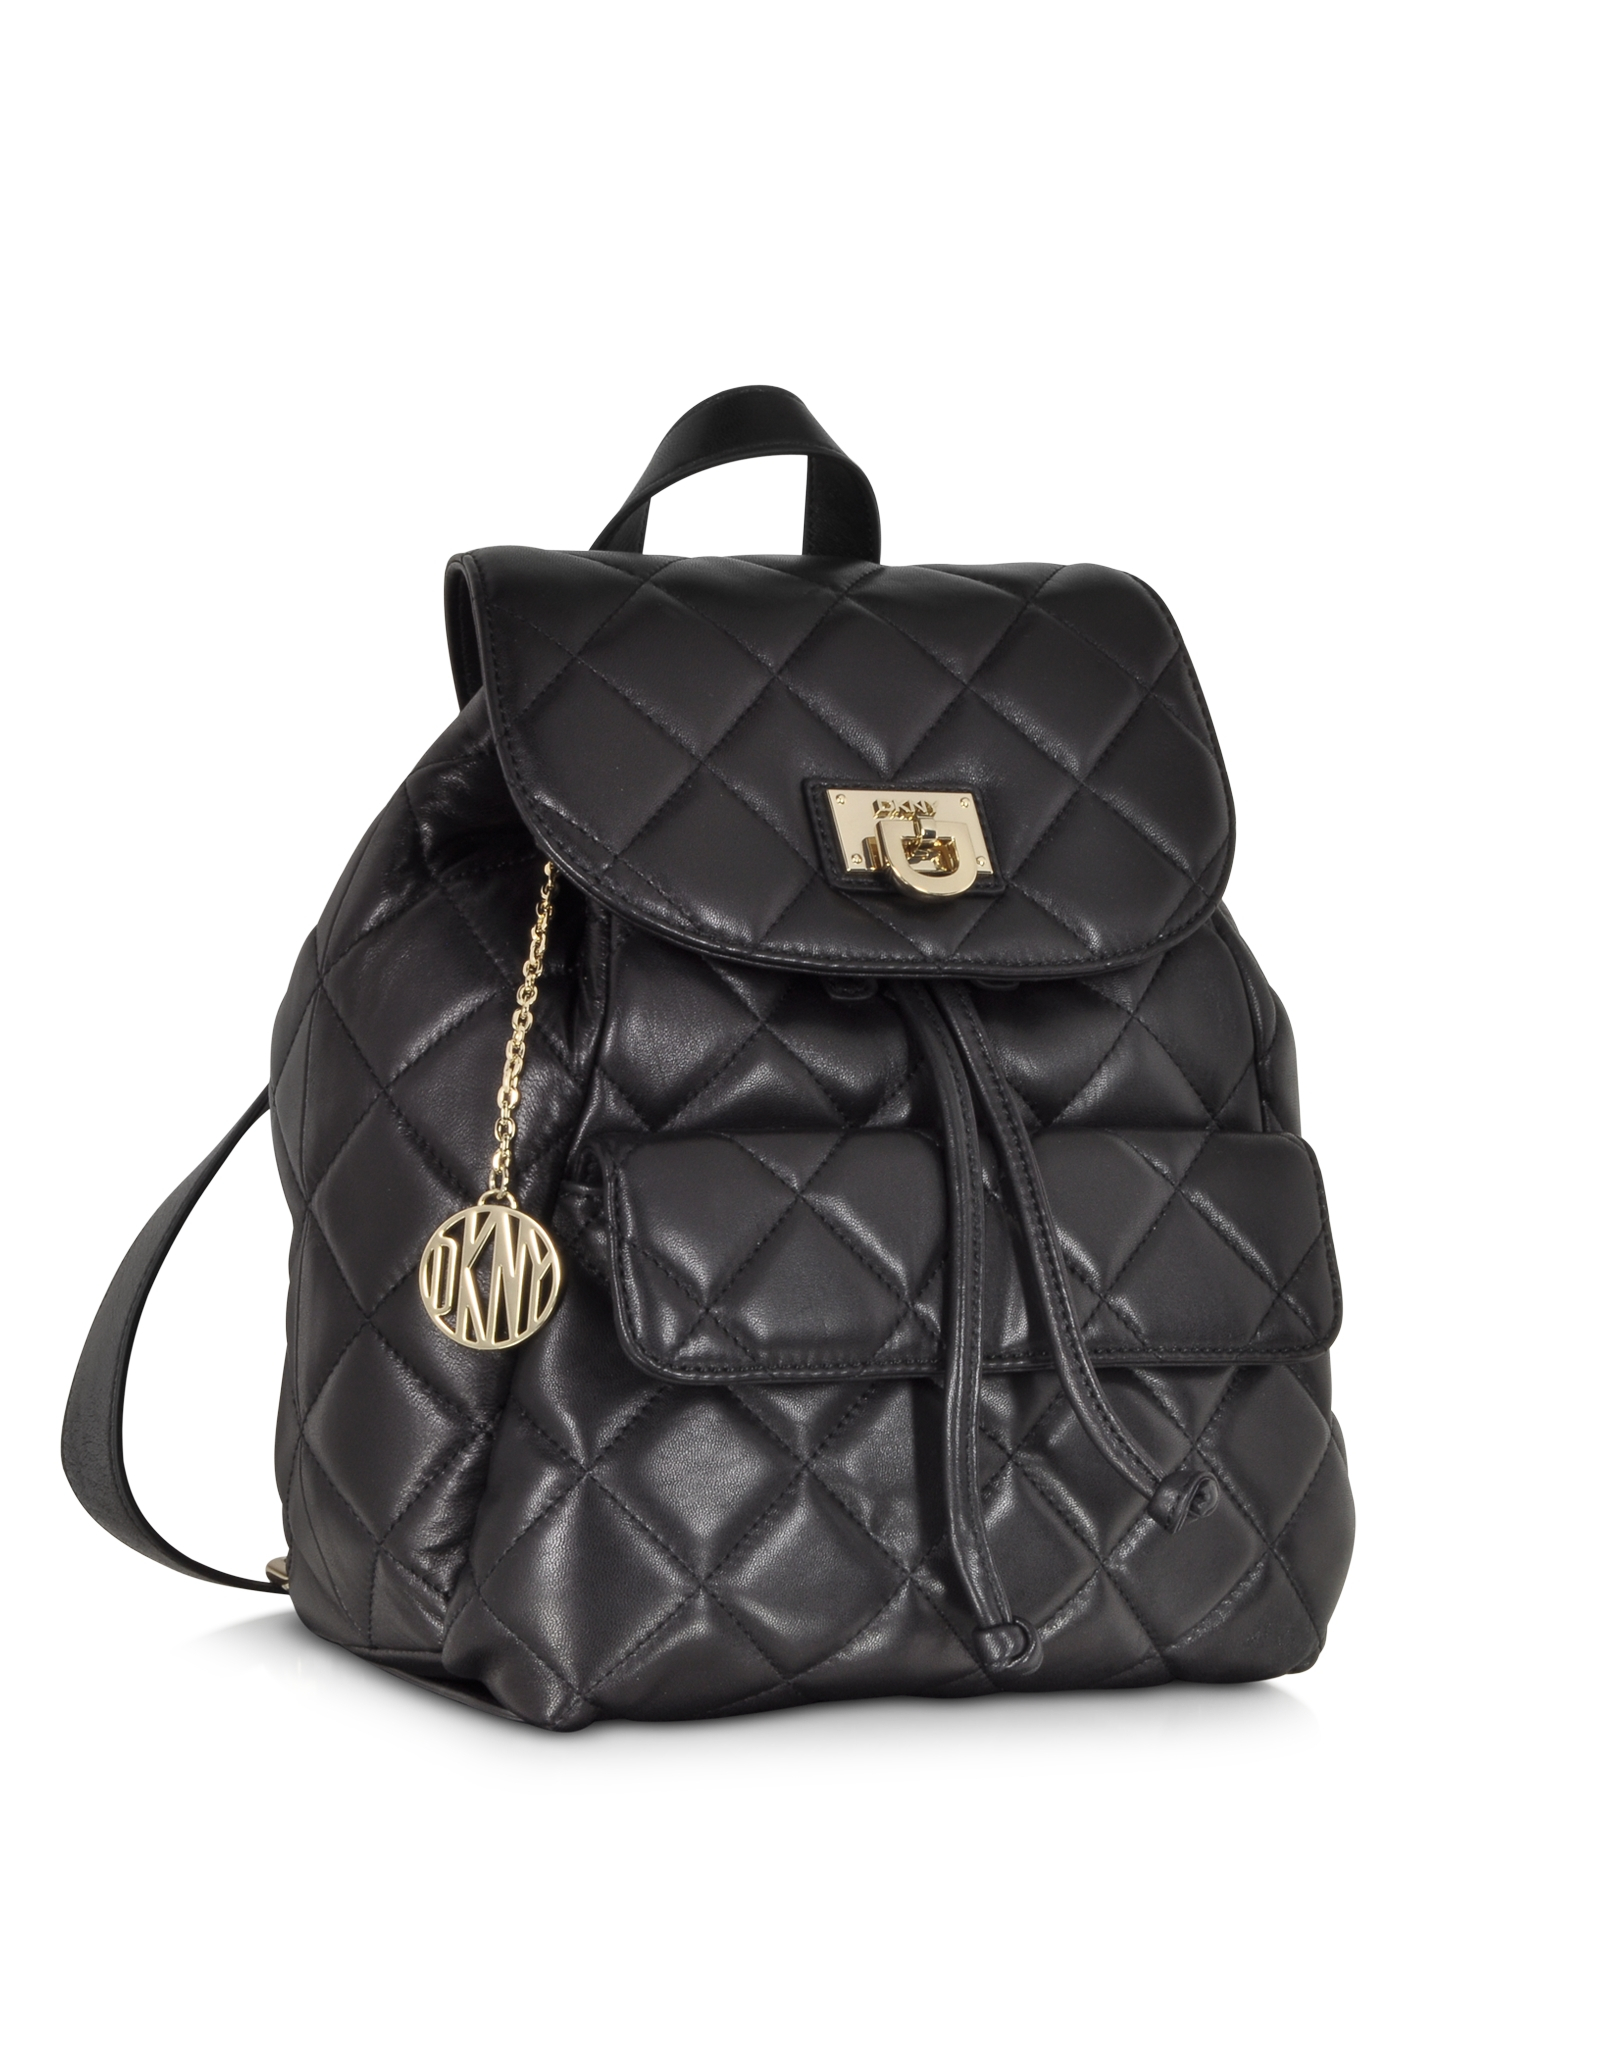 Dkny Gansevoort Black Quilted Nappa Leather Backpack in Black | Lyst : quilted leather rucksack - Adamdwight.com